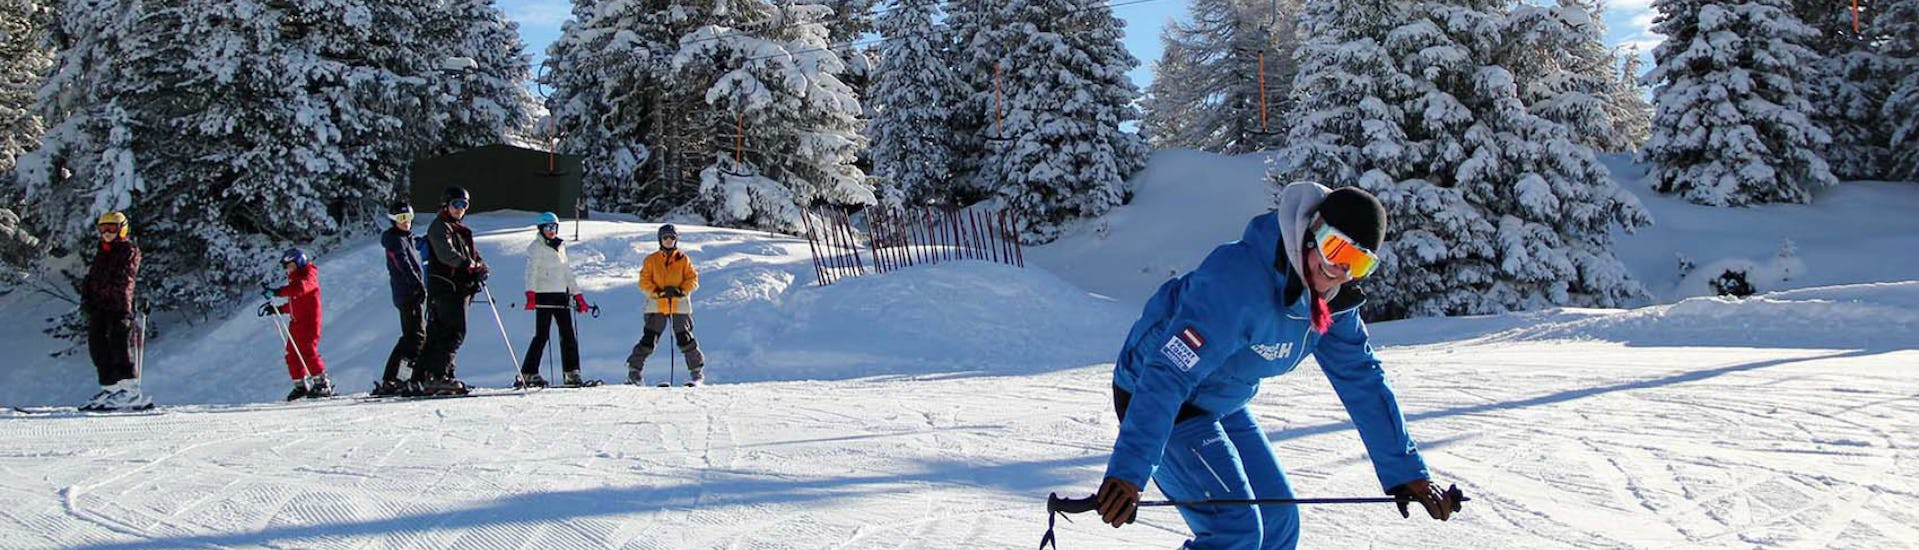 Small Group Ski Lessons for Adults - Beginner